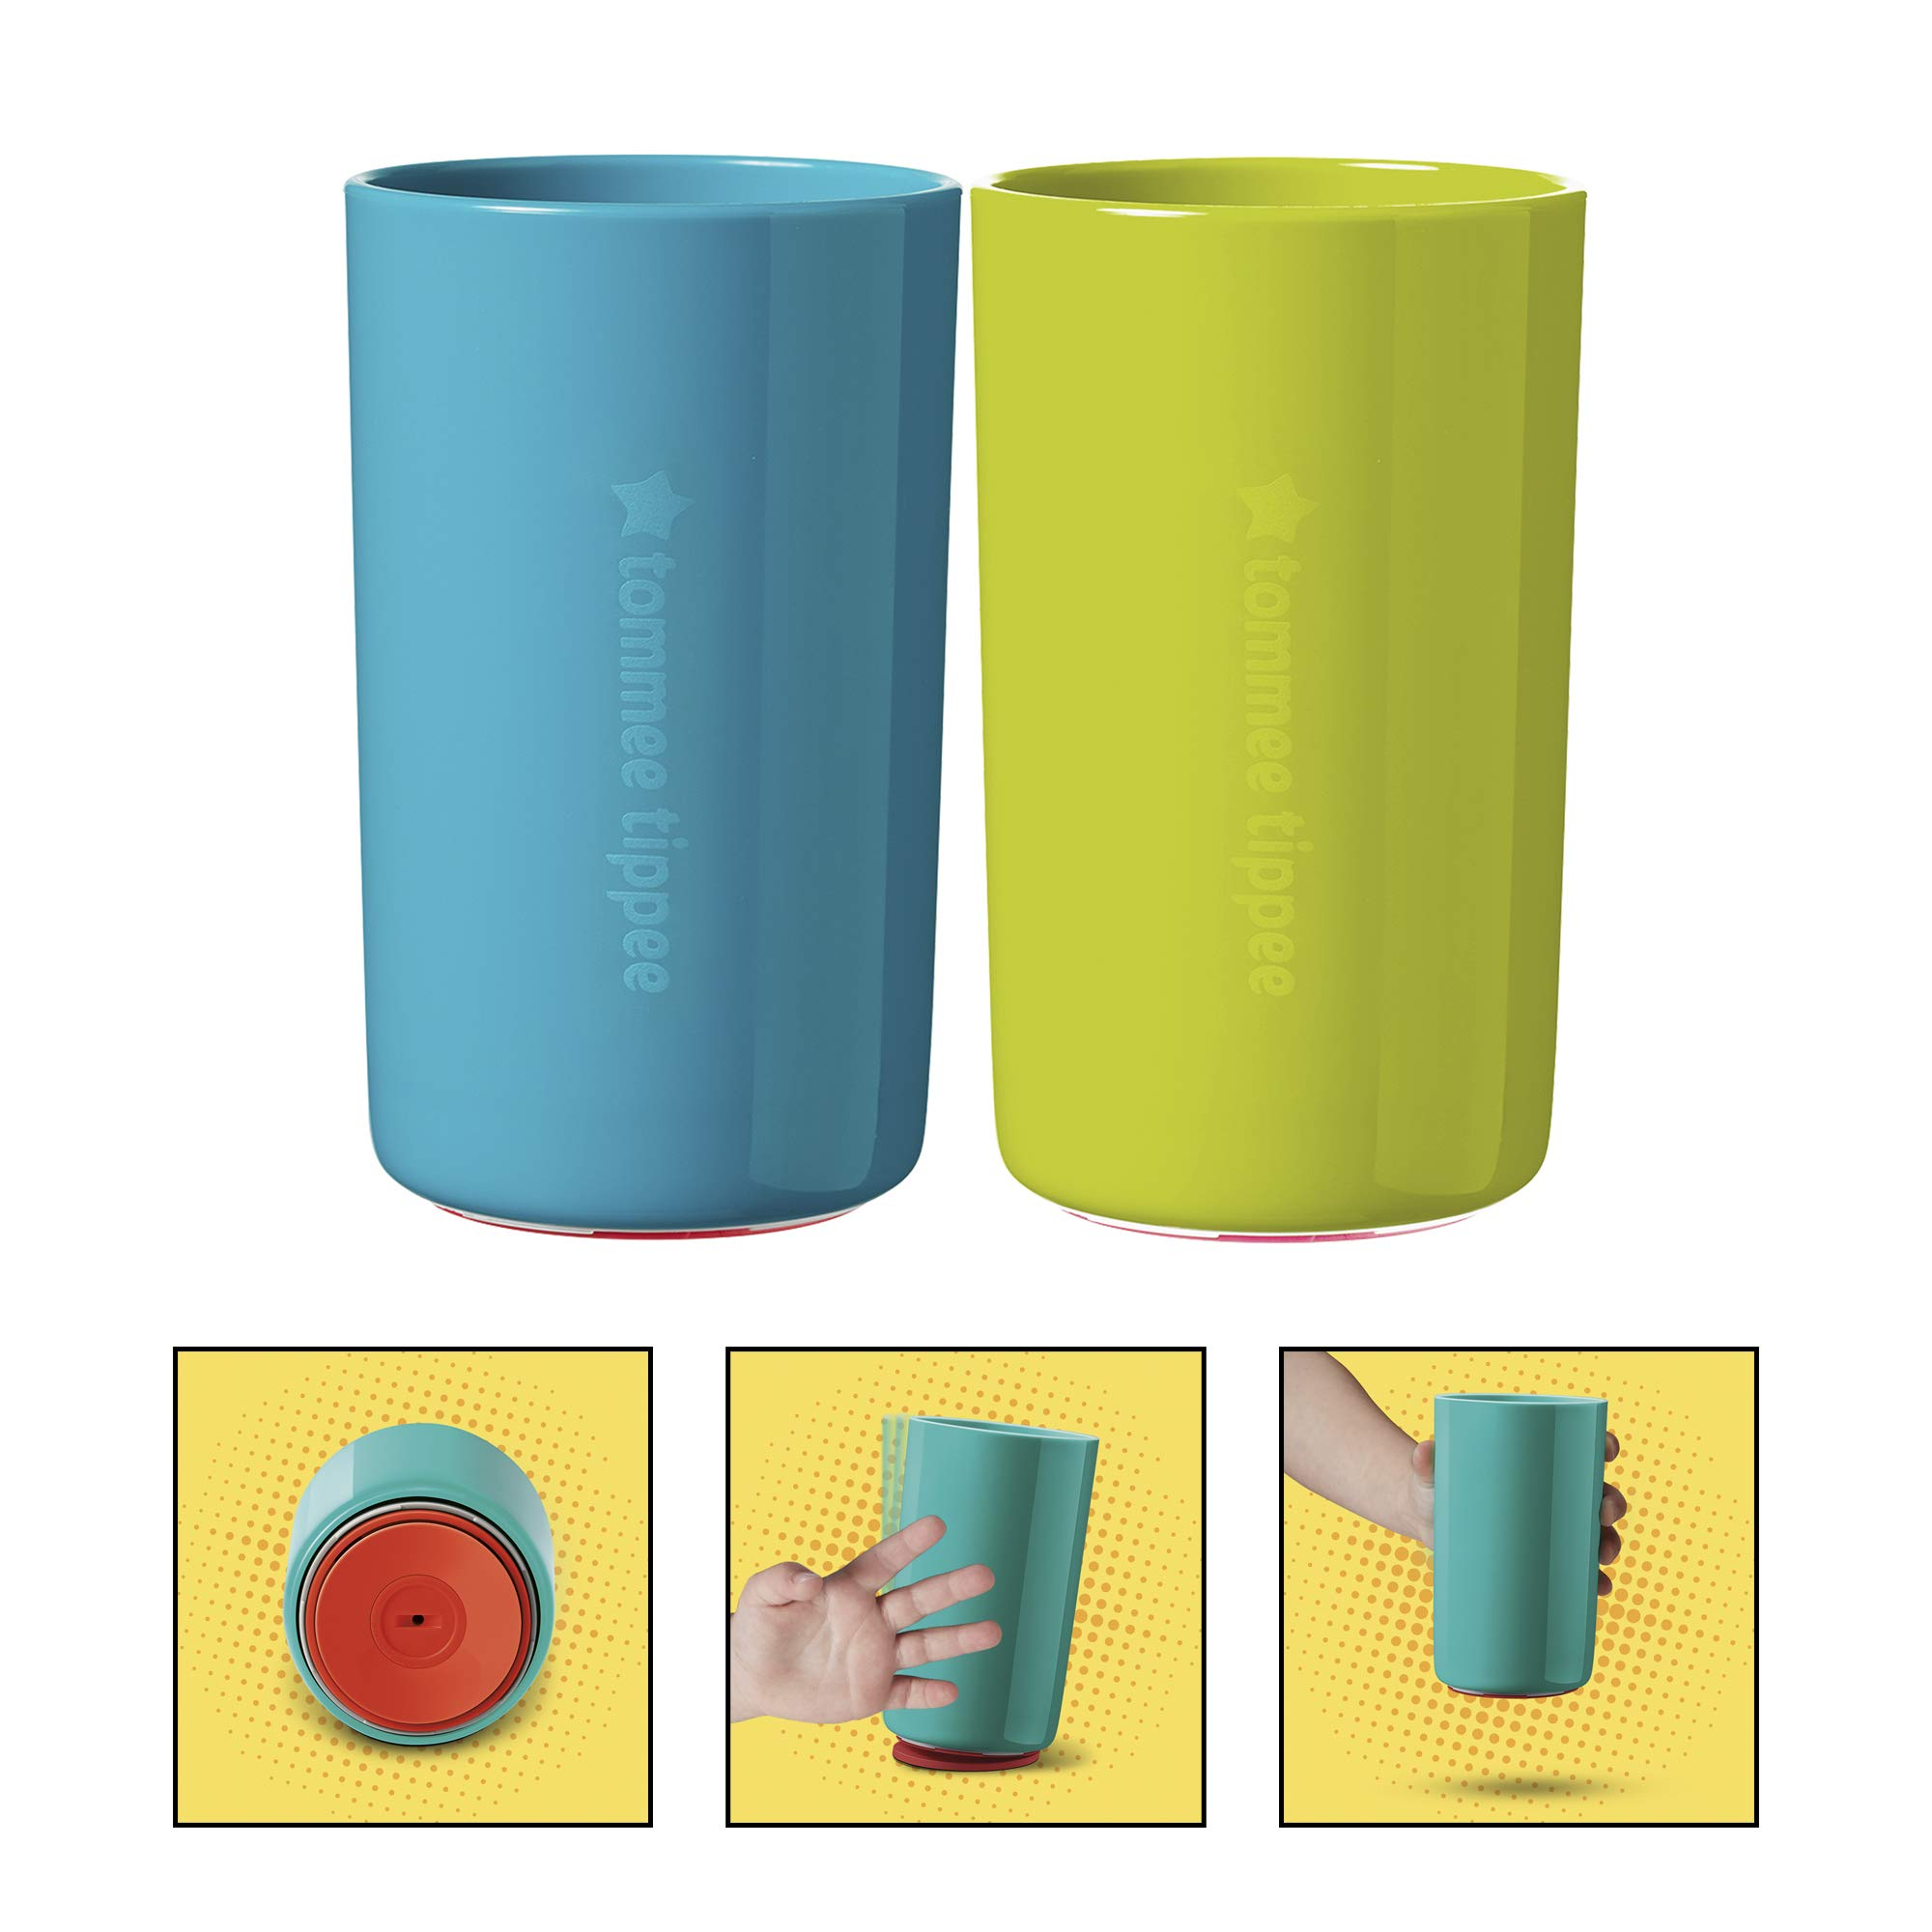 Tommee Tippee No Knock Transition Toddler Cup with Clevergrip base, Teal & Green, 18+ Months by Tommee Tippee